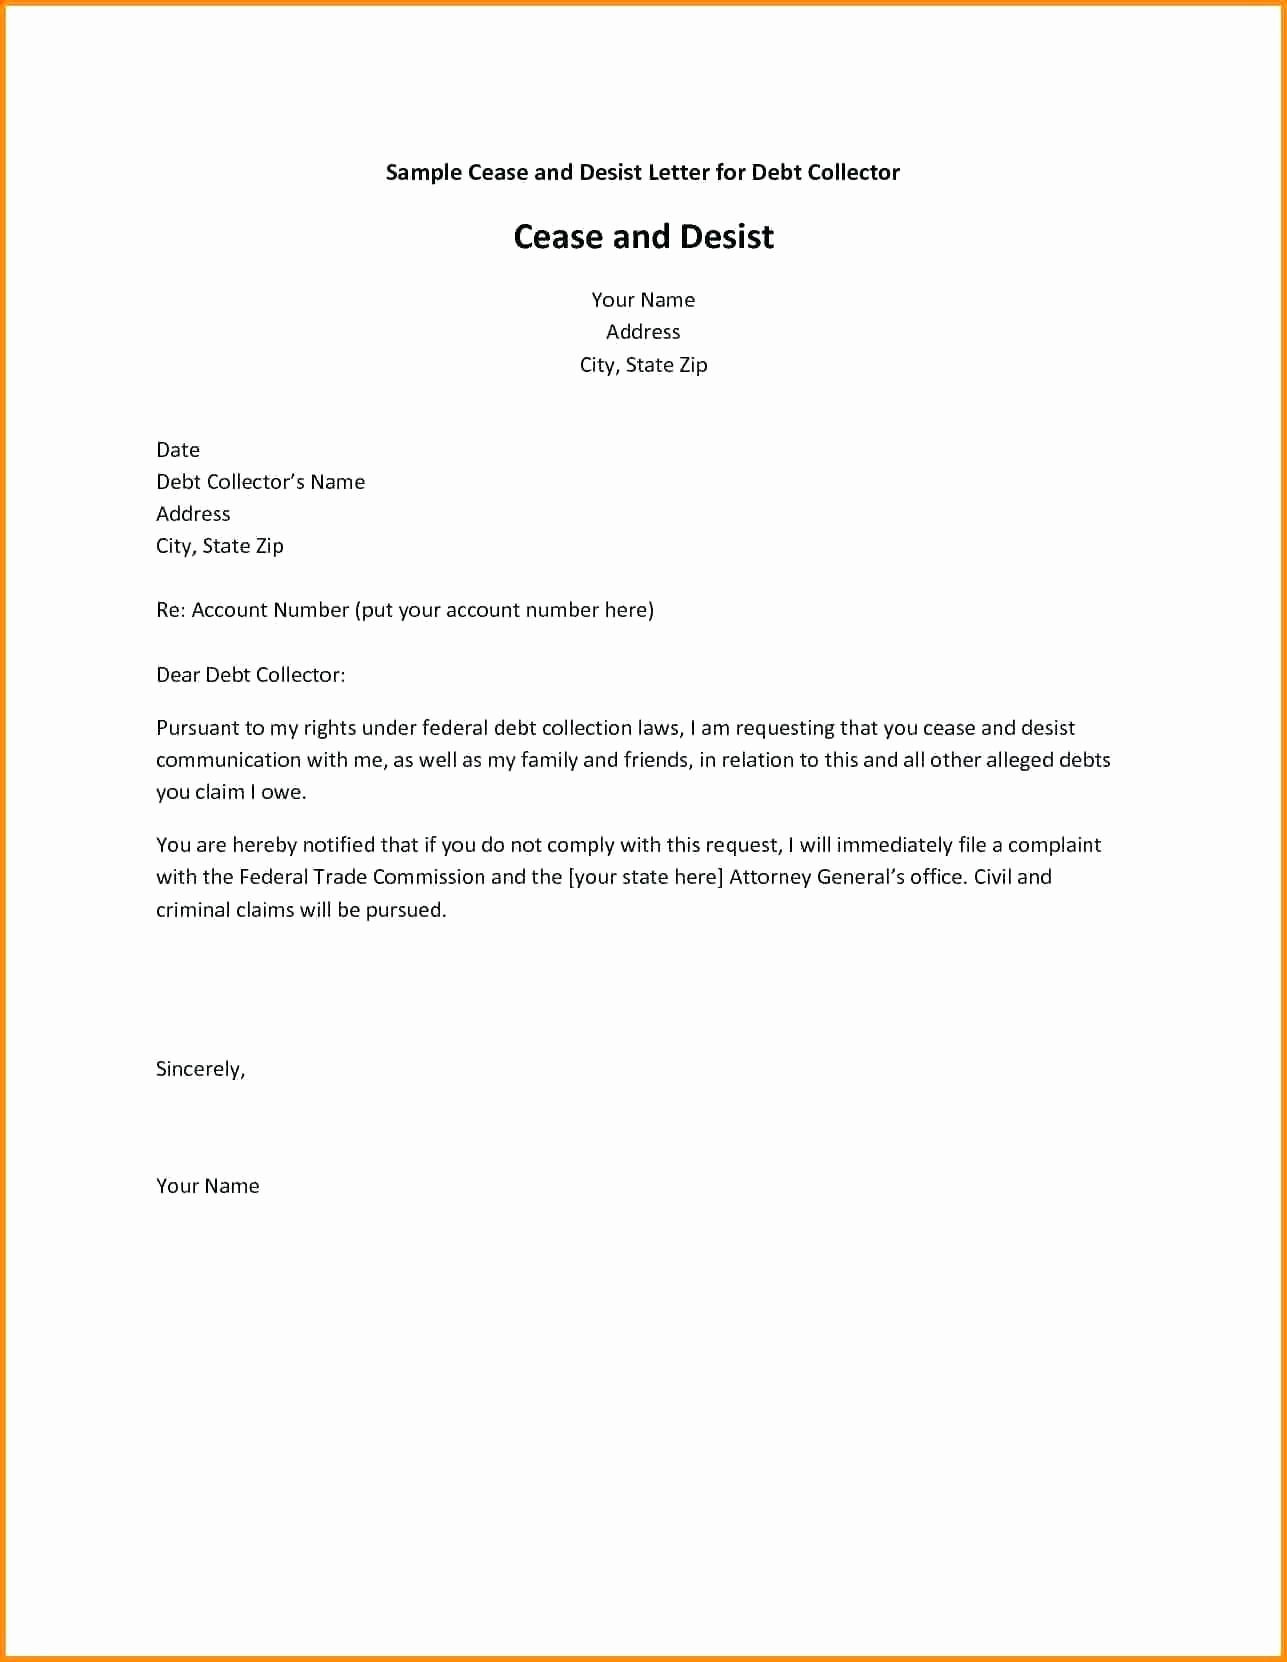 General Cease and Desist Letter Template - Sample Cease and Desist Letter to former Employee Awesome Cease and